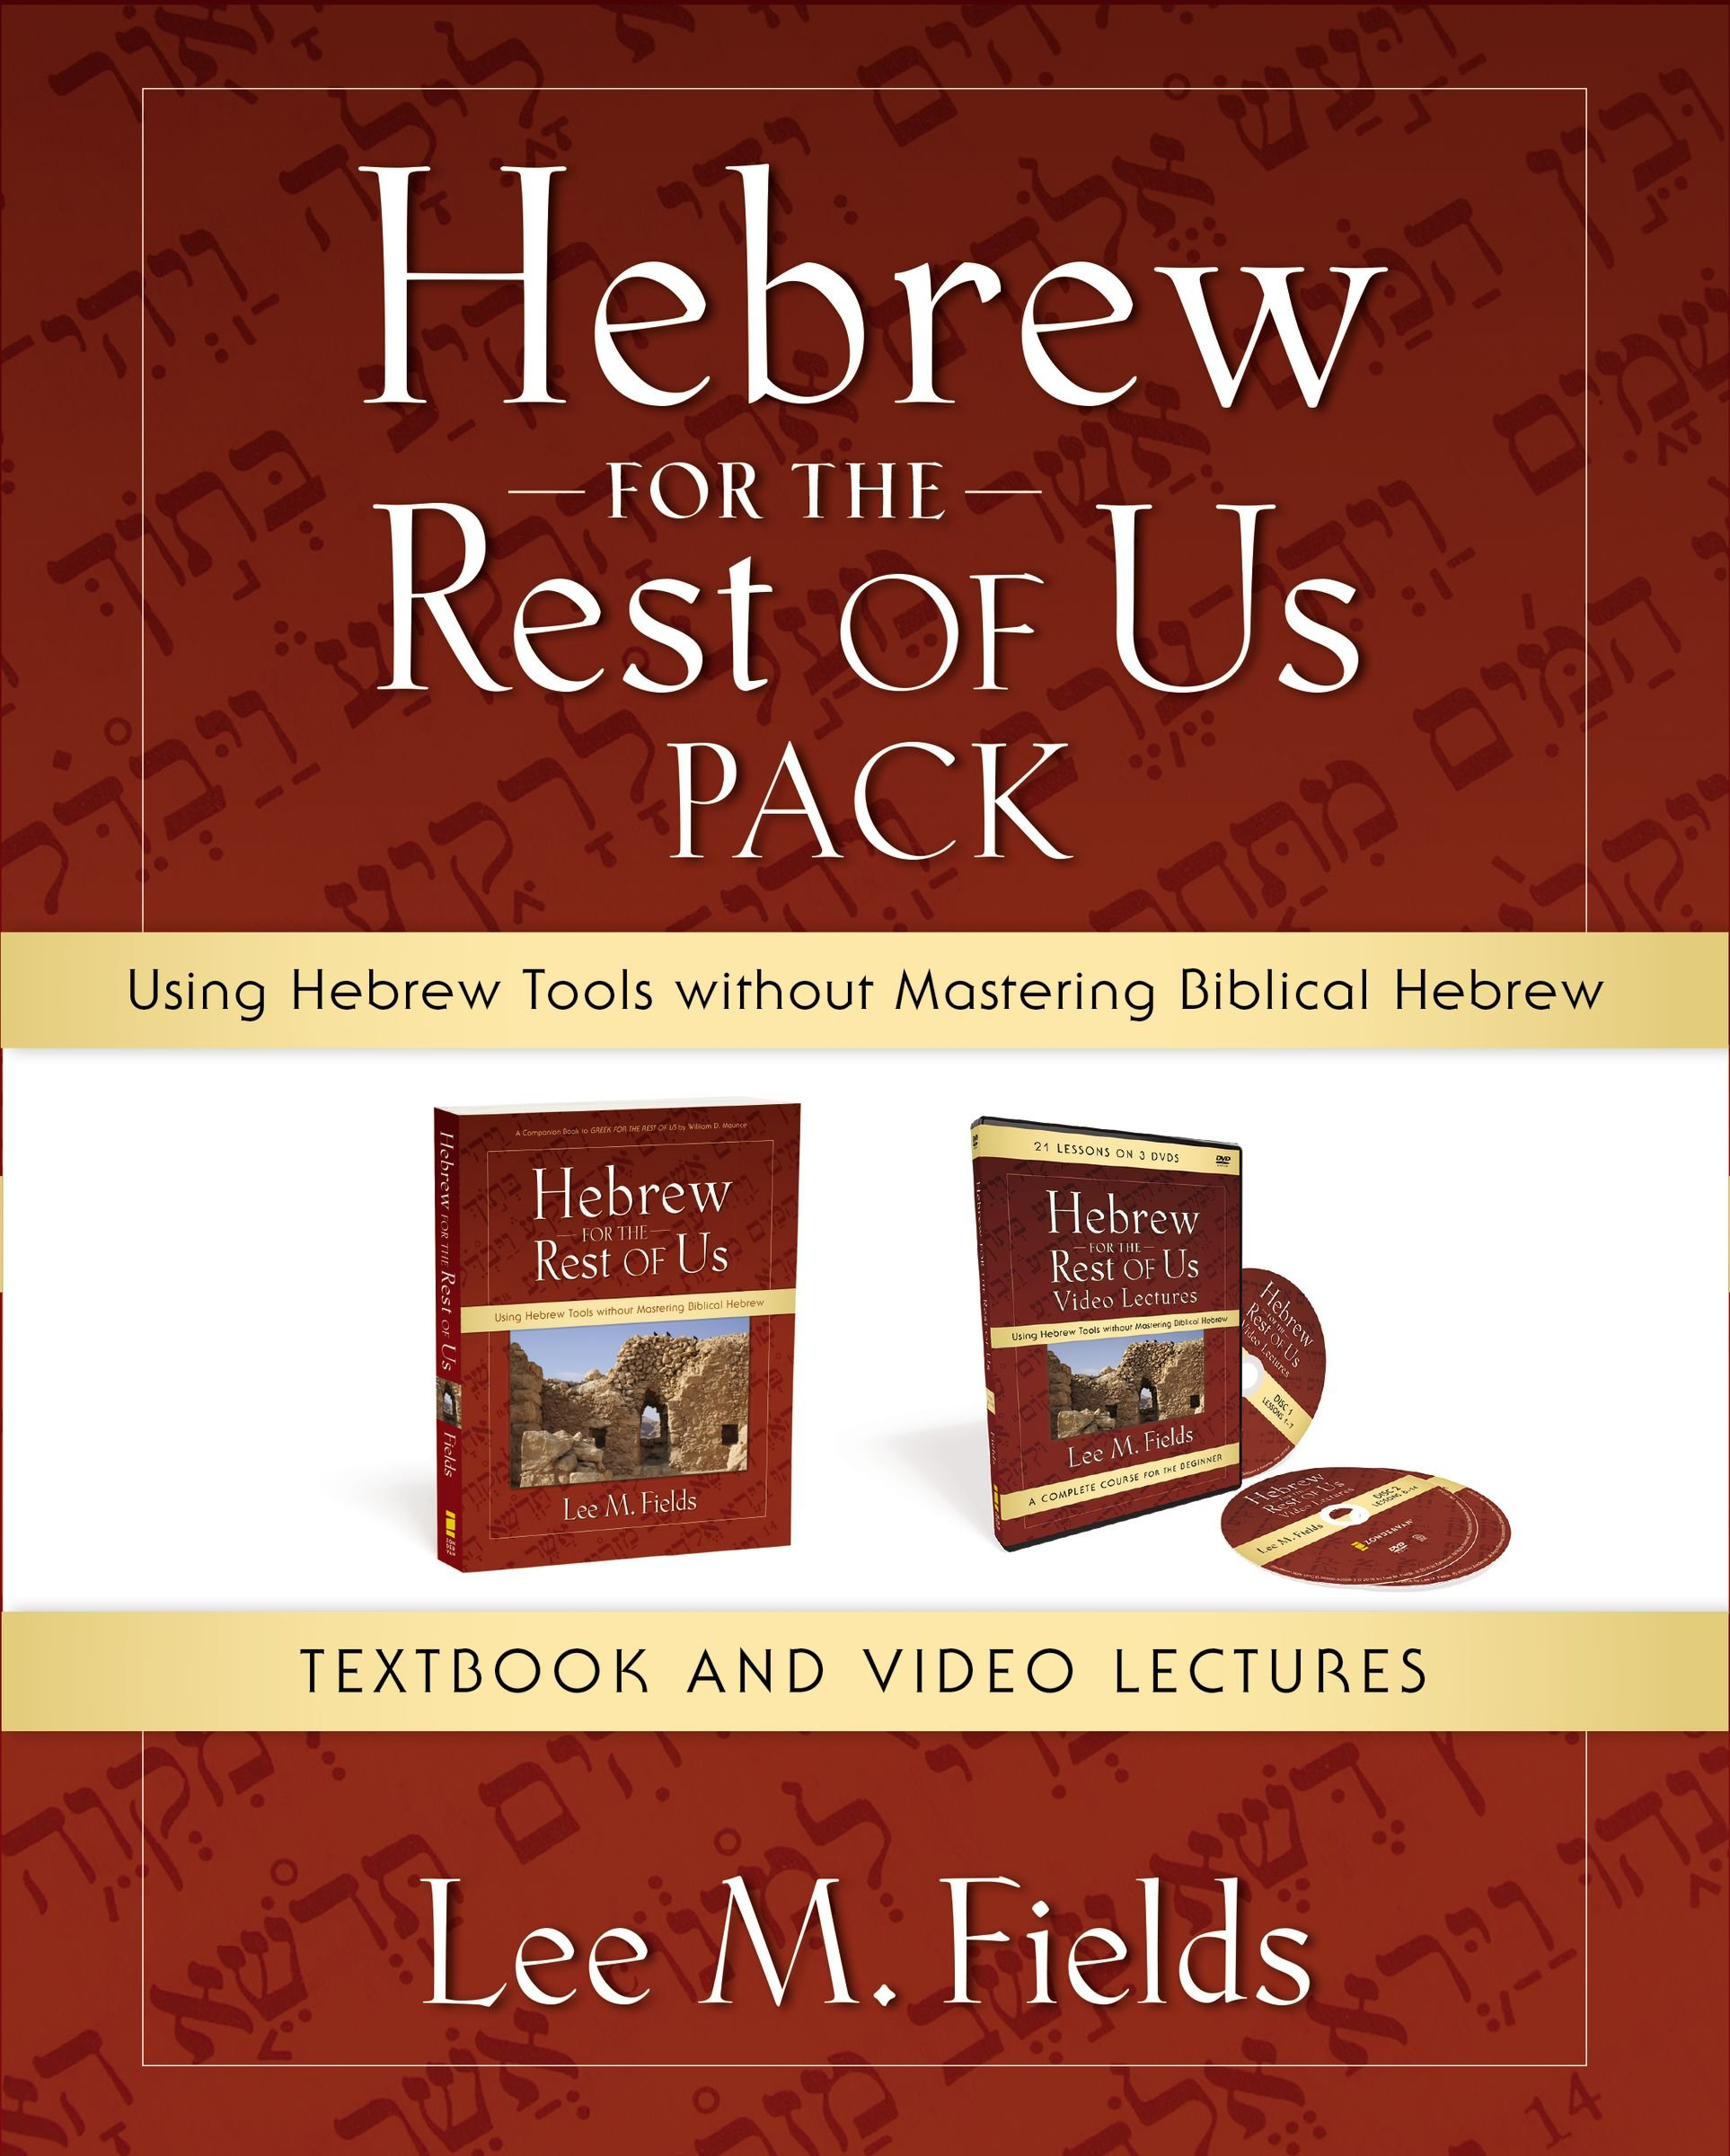 Hebrew for the Rest of Us Pack: Using Hebrew Tools without